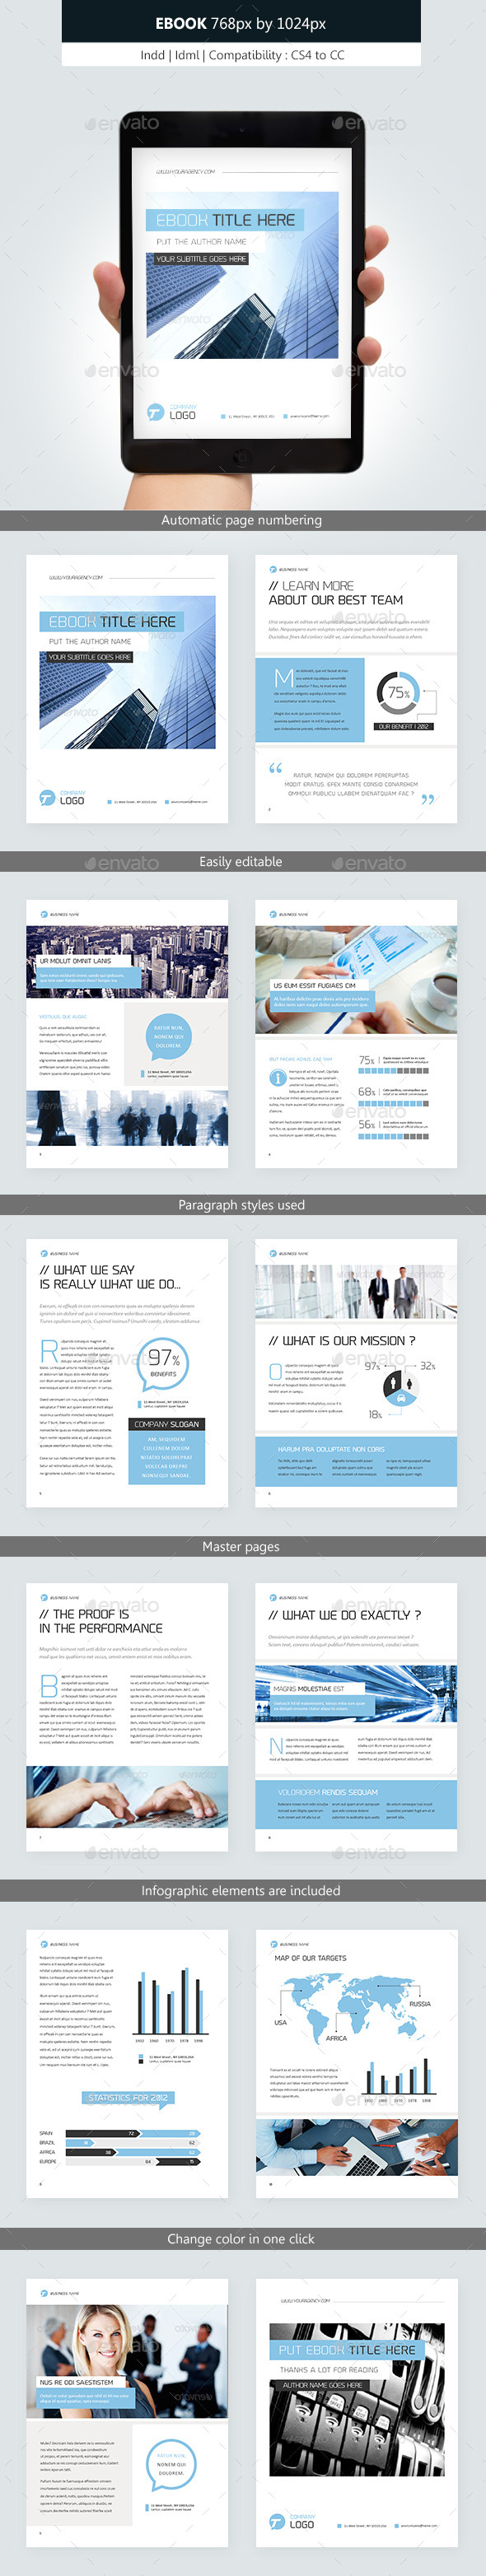 Corporate Ebook Template Design vol.2